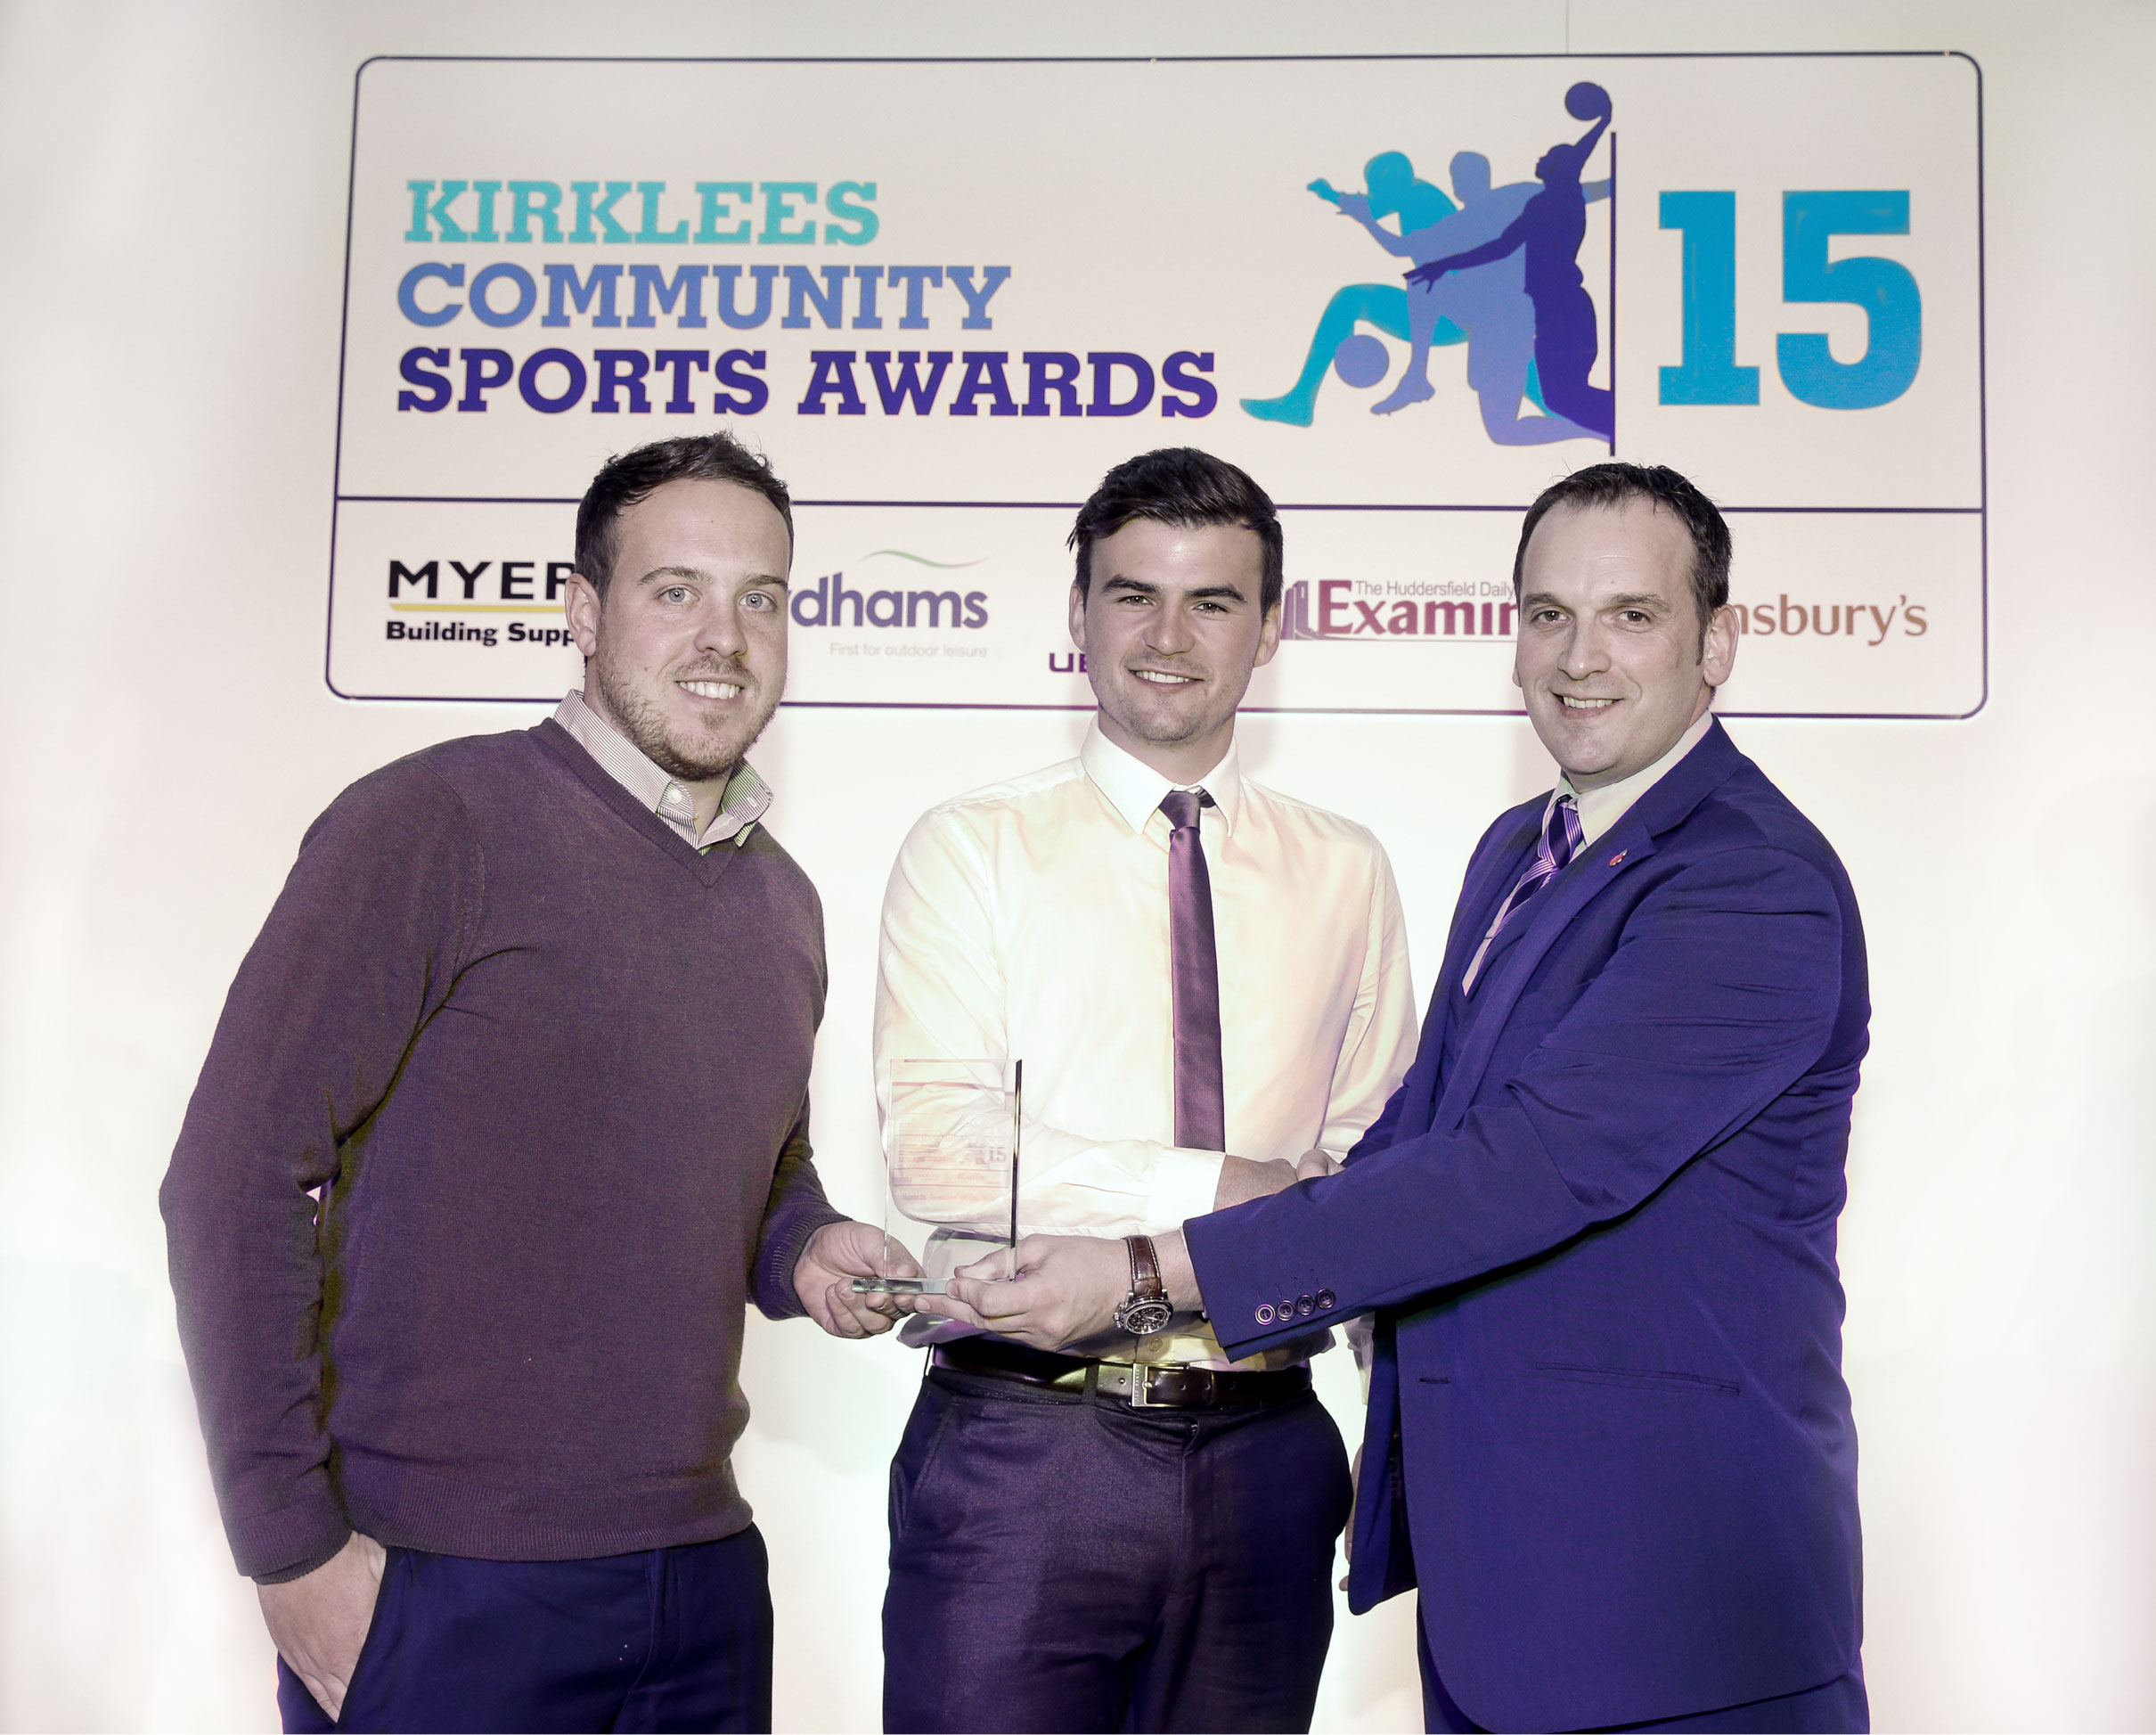 Kirklees Community Sports Awards - Sports Teachers of the Year 2015 Winners, Project Sport's Andy Gledhill and Antony Leech